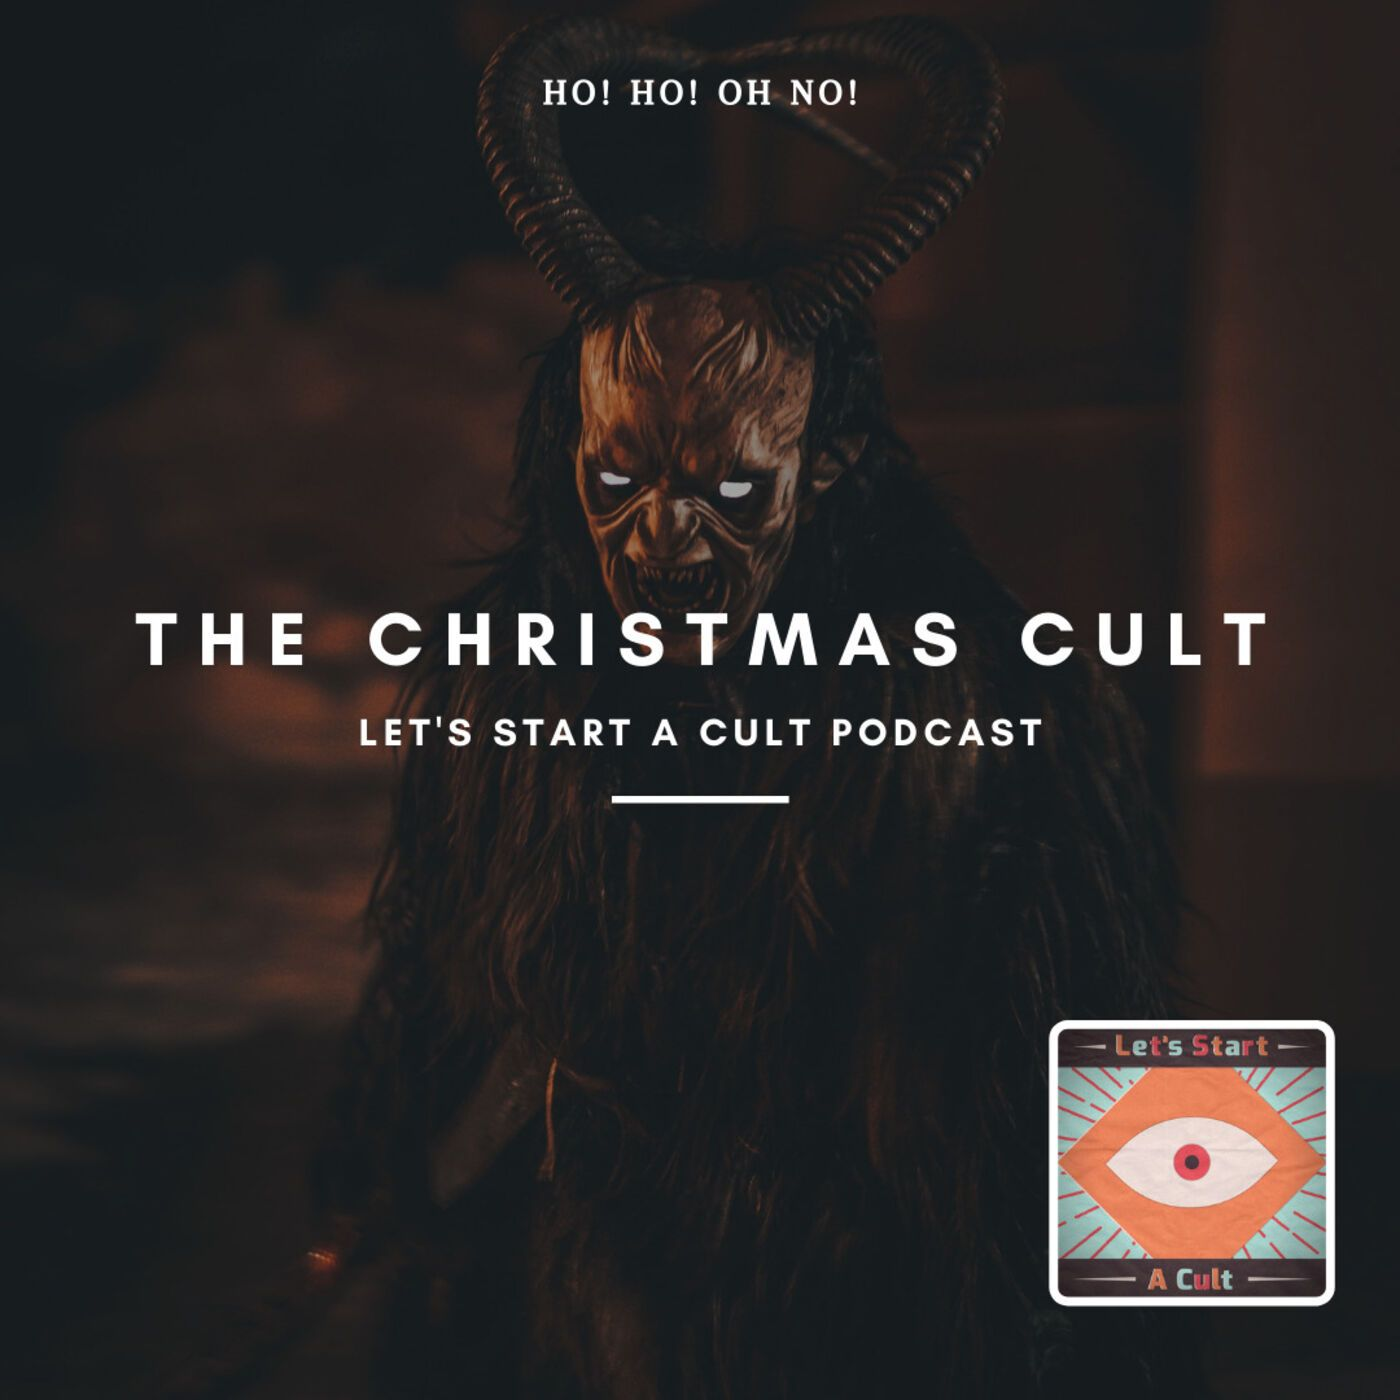 The Christmas Cult